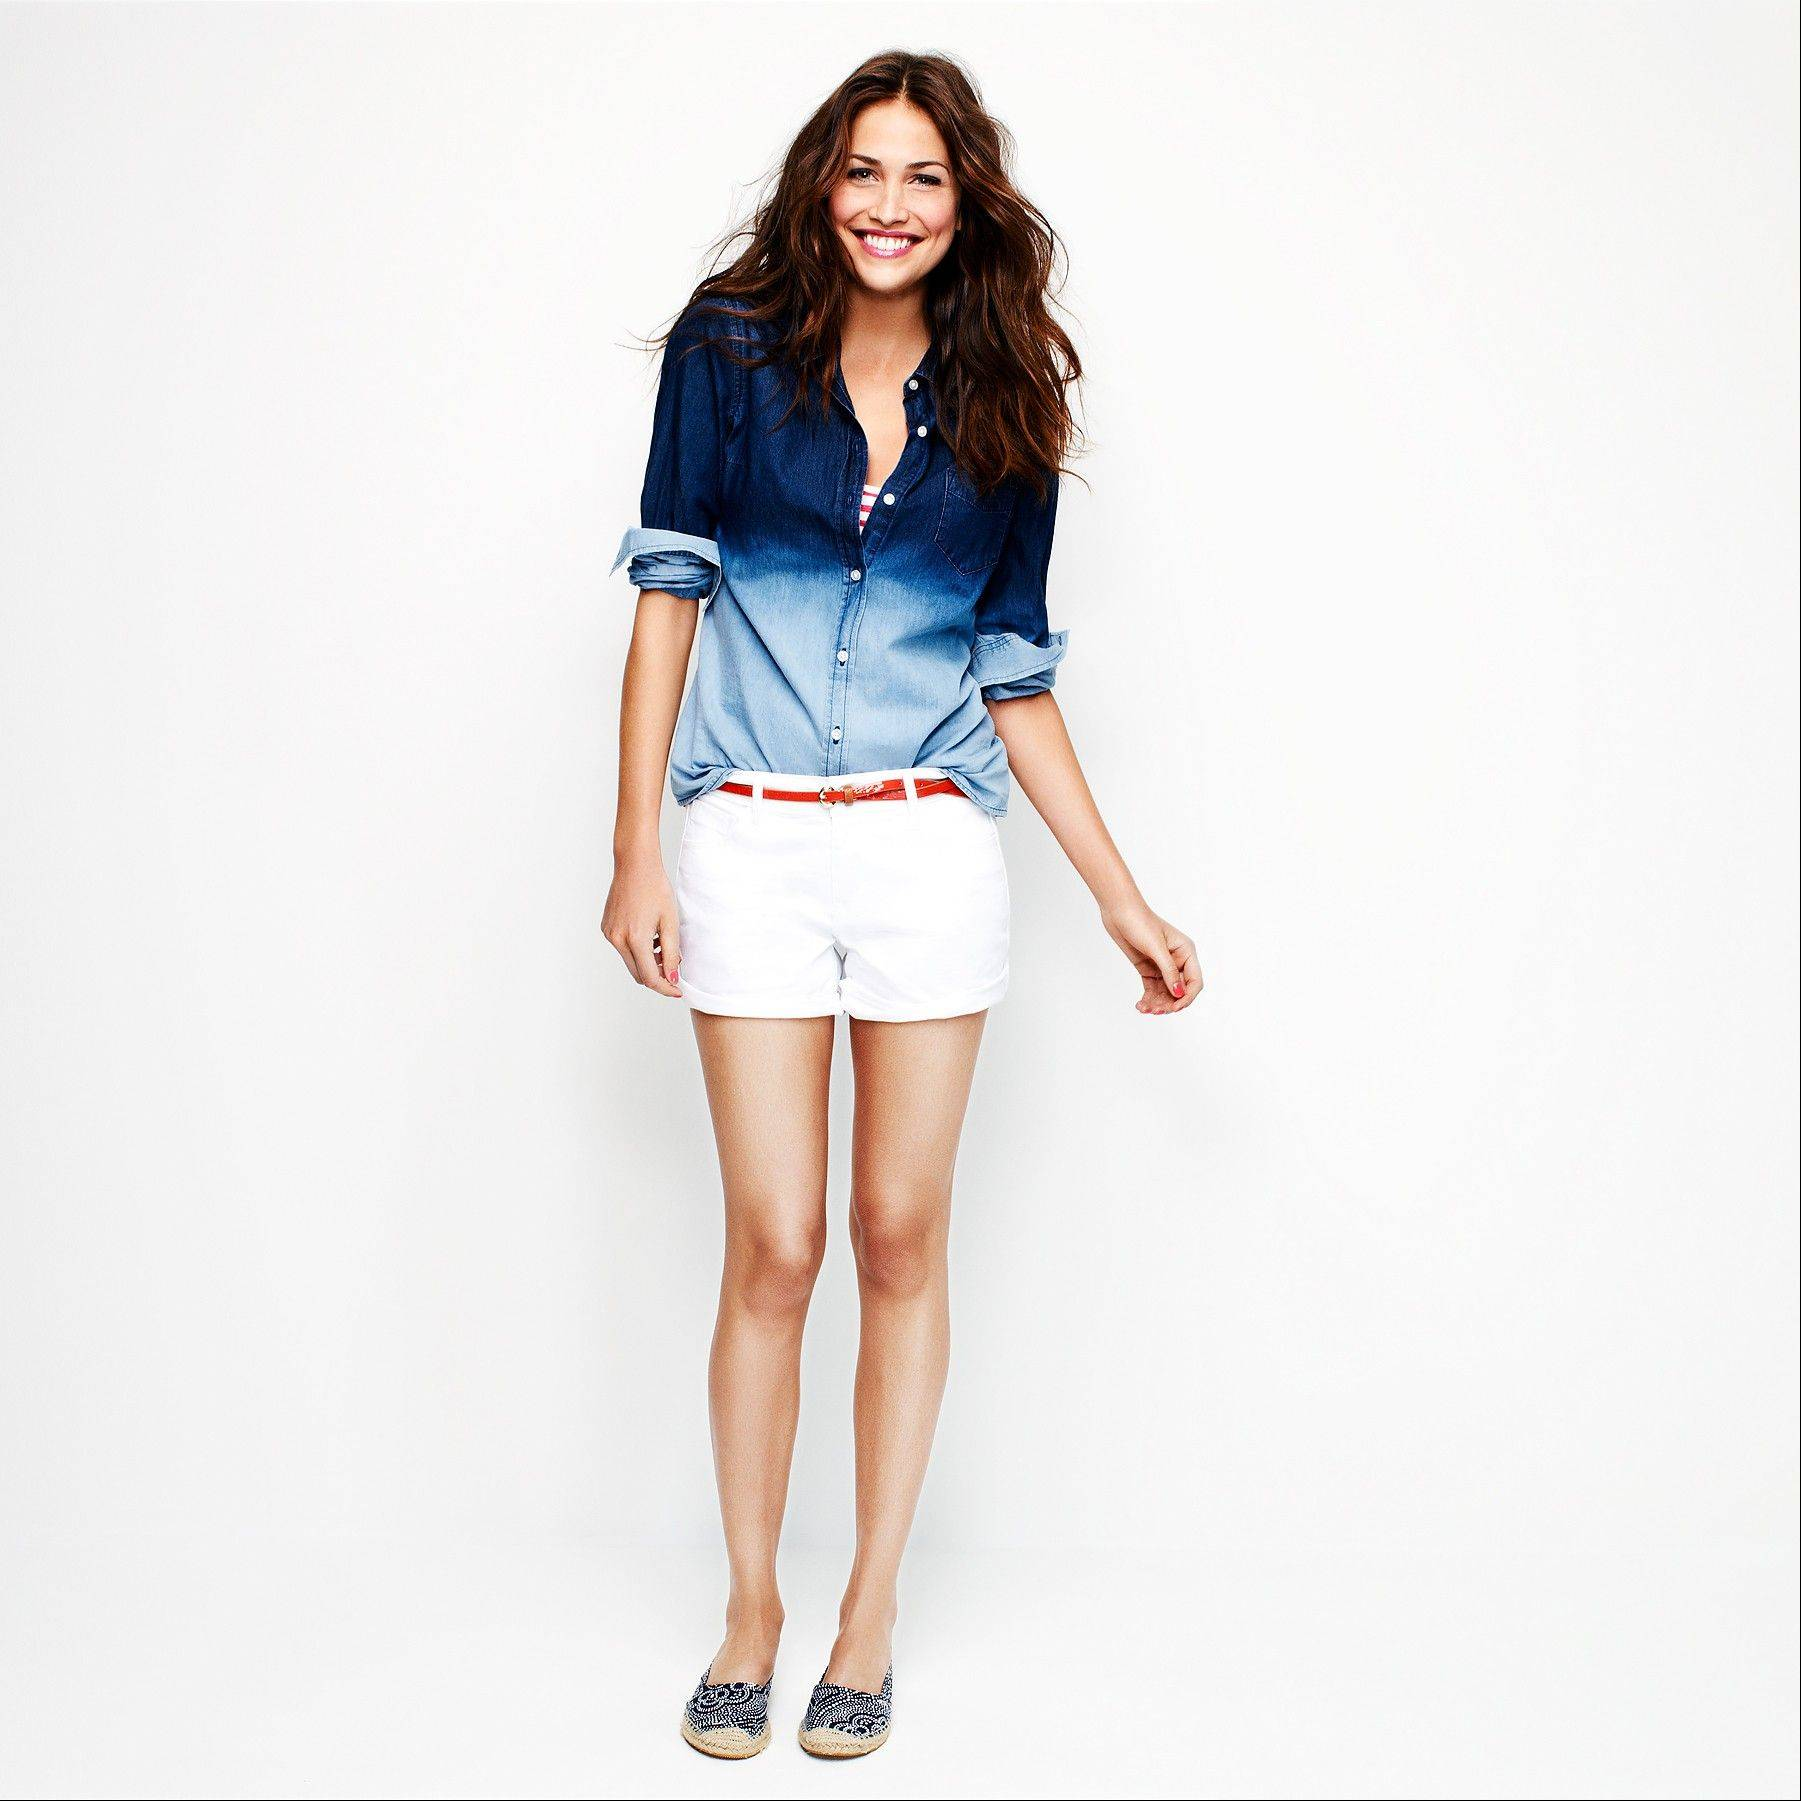 A model wears white denim shorts and a two-tone blue denim top. Many stores are recognizing that shoppers like to purchase their summer clothing when the weather is warm enough for them to wear it.